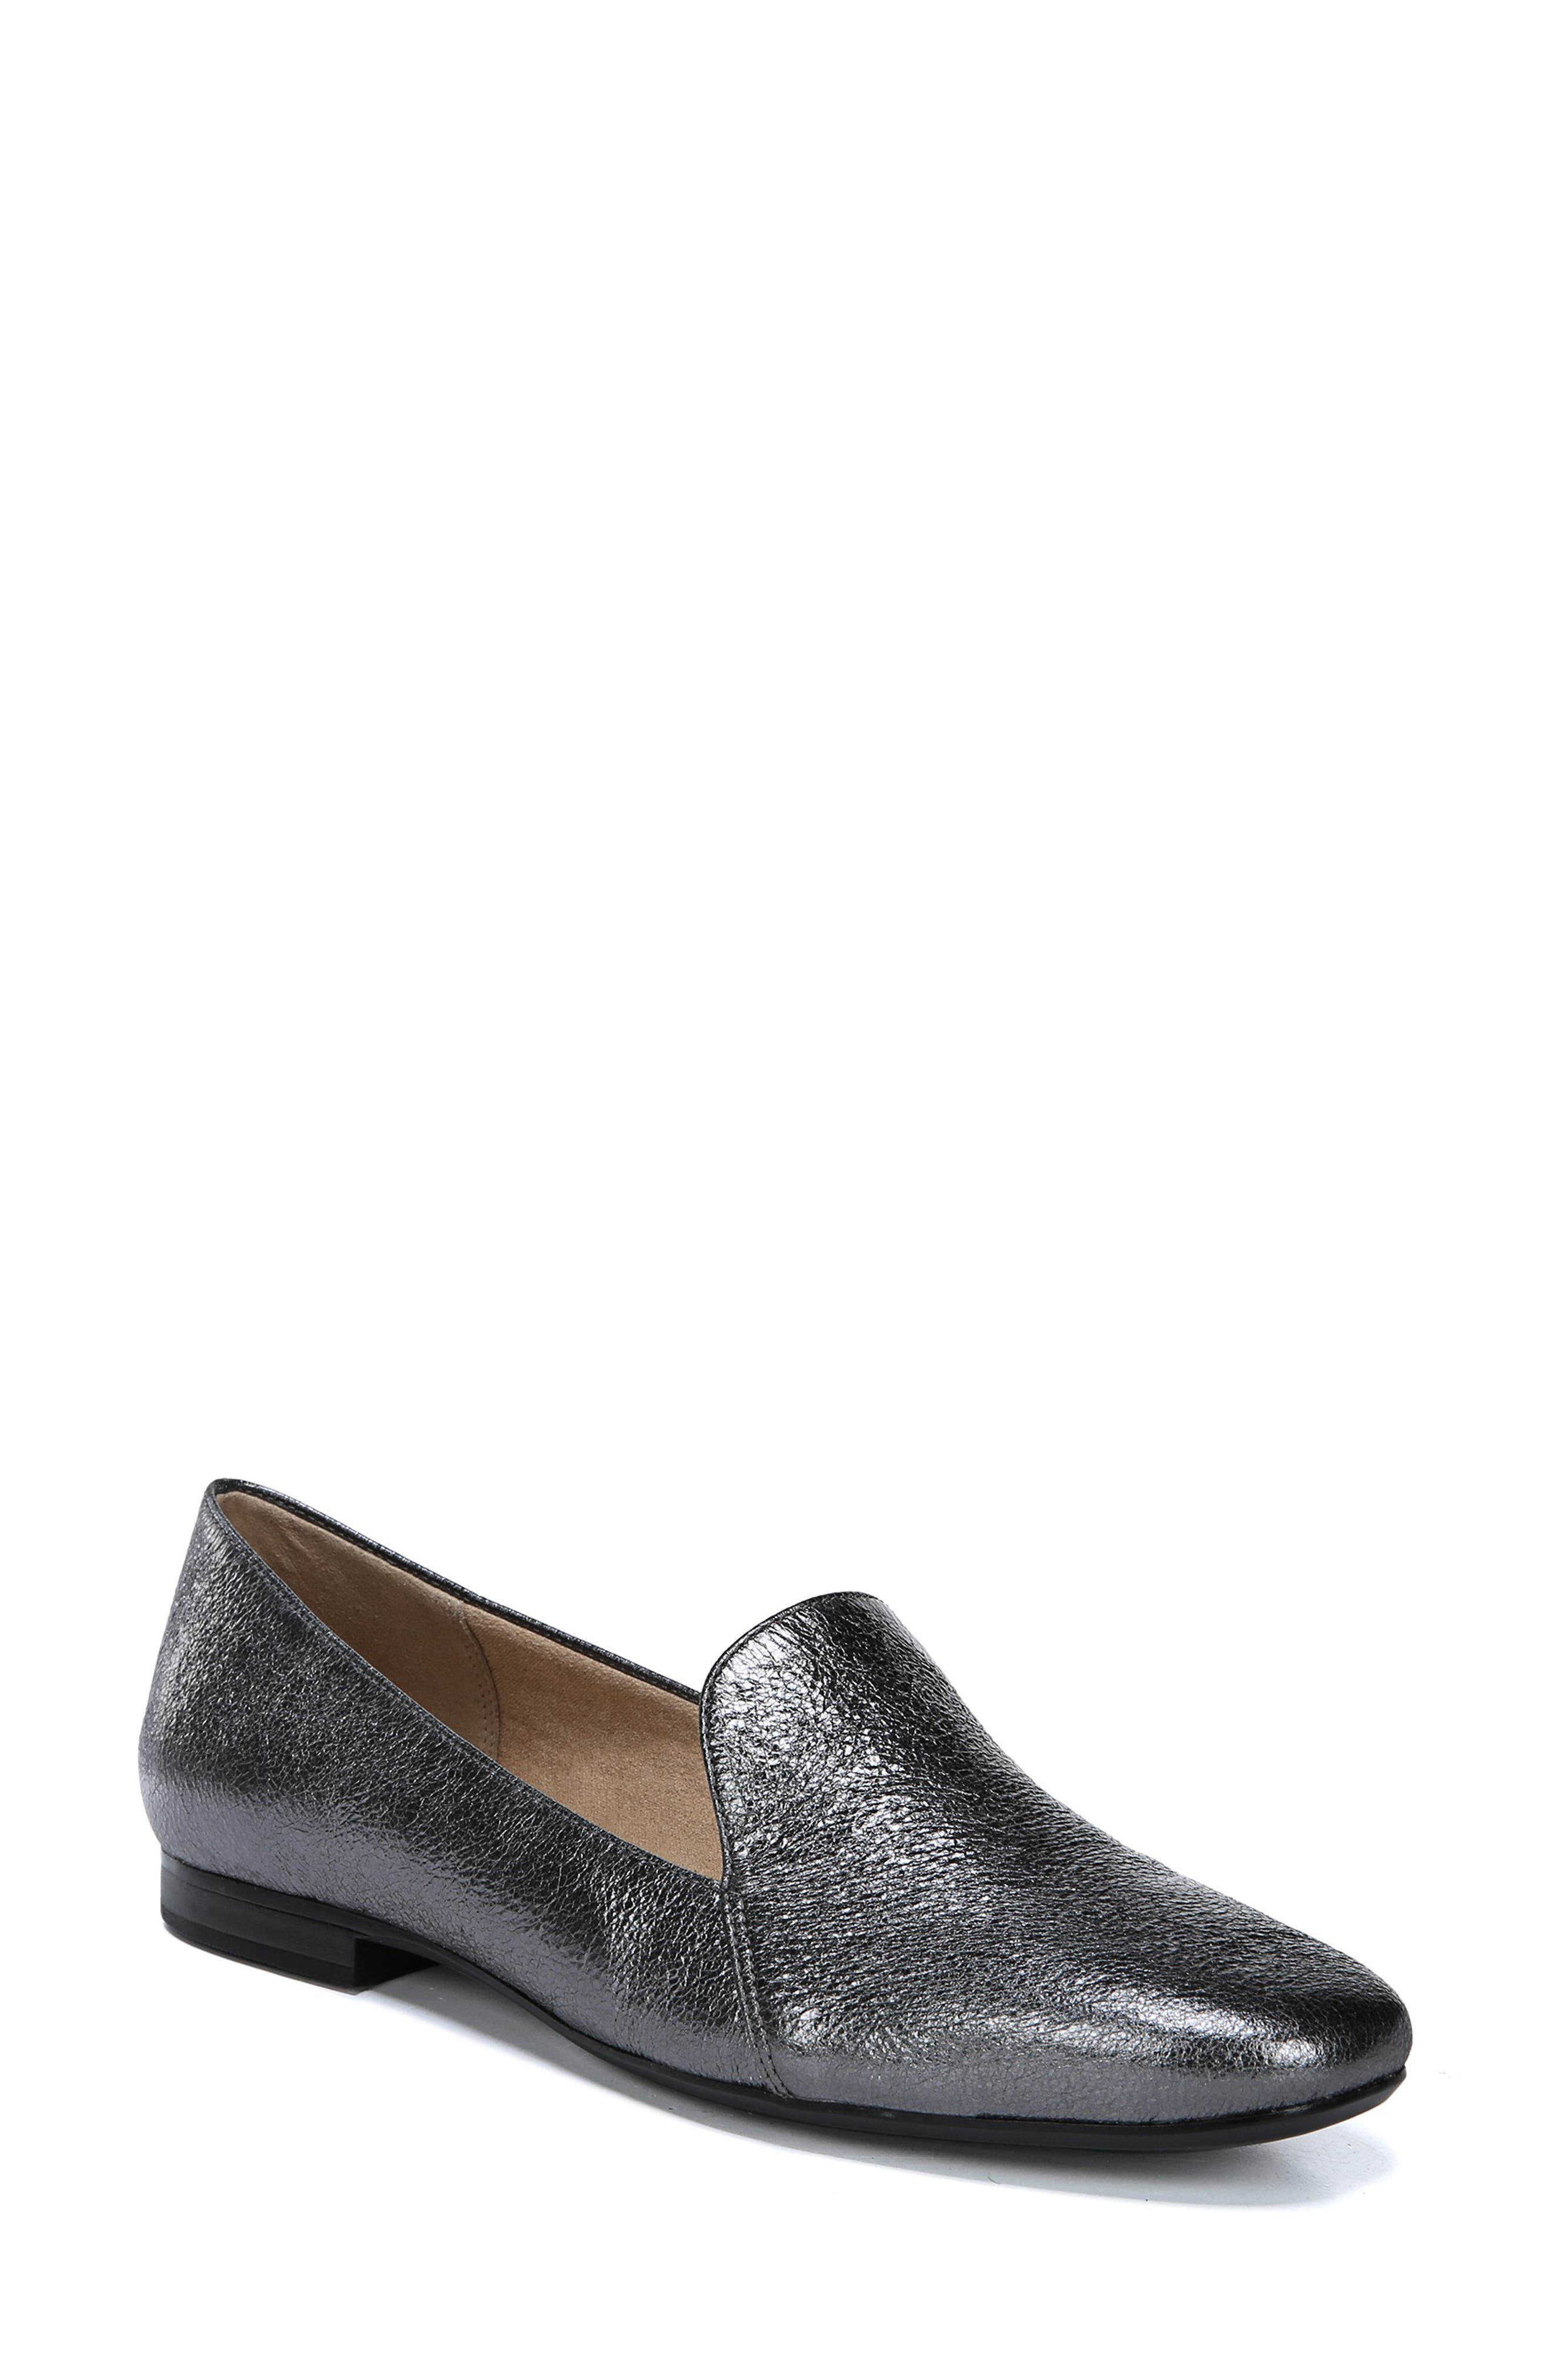 Emiline Flat Loafer,                             Main thumbnail 1, color,                             PEWTER LEATHER